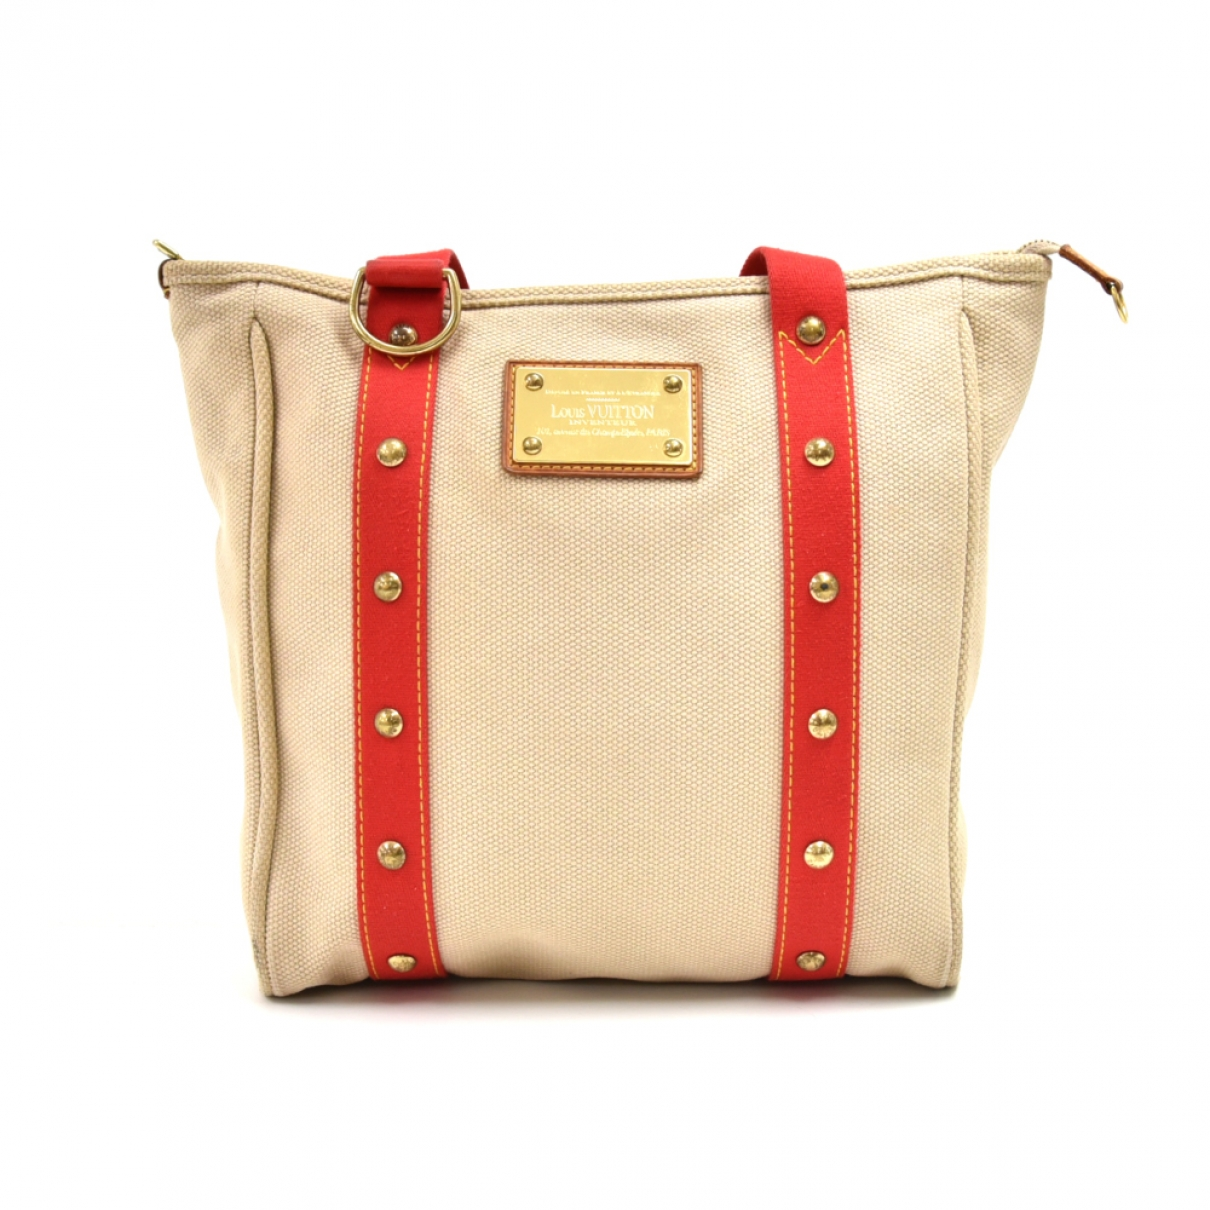 Louis Vuitton Antigua Beige Cloth handbag for Women \N